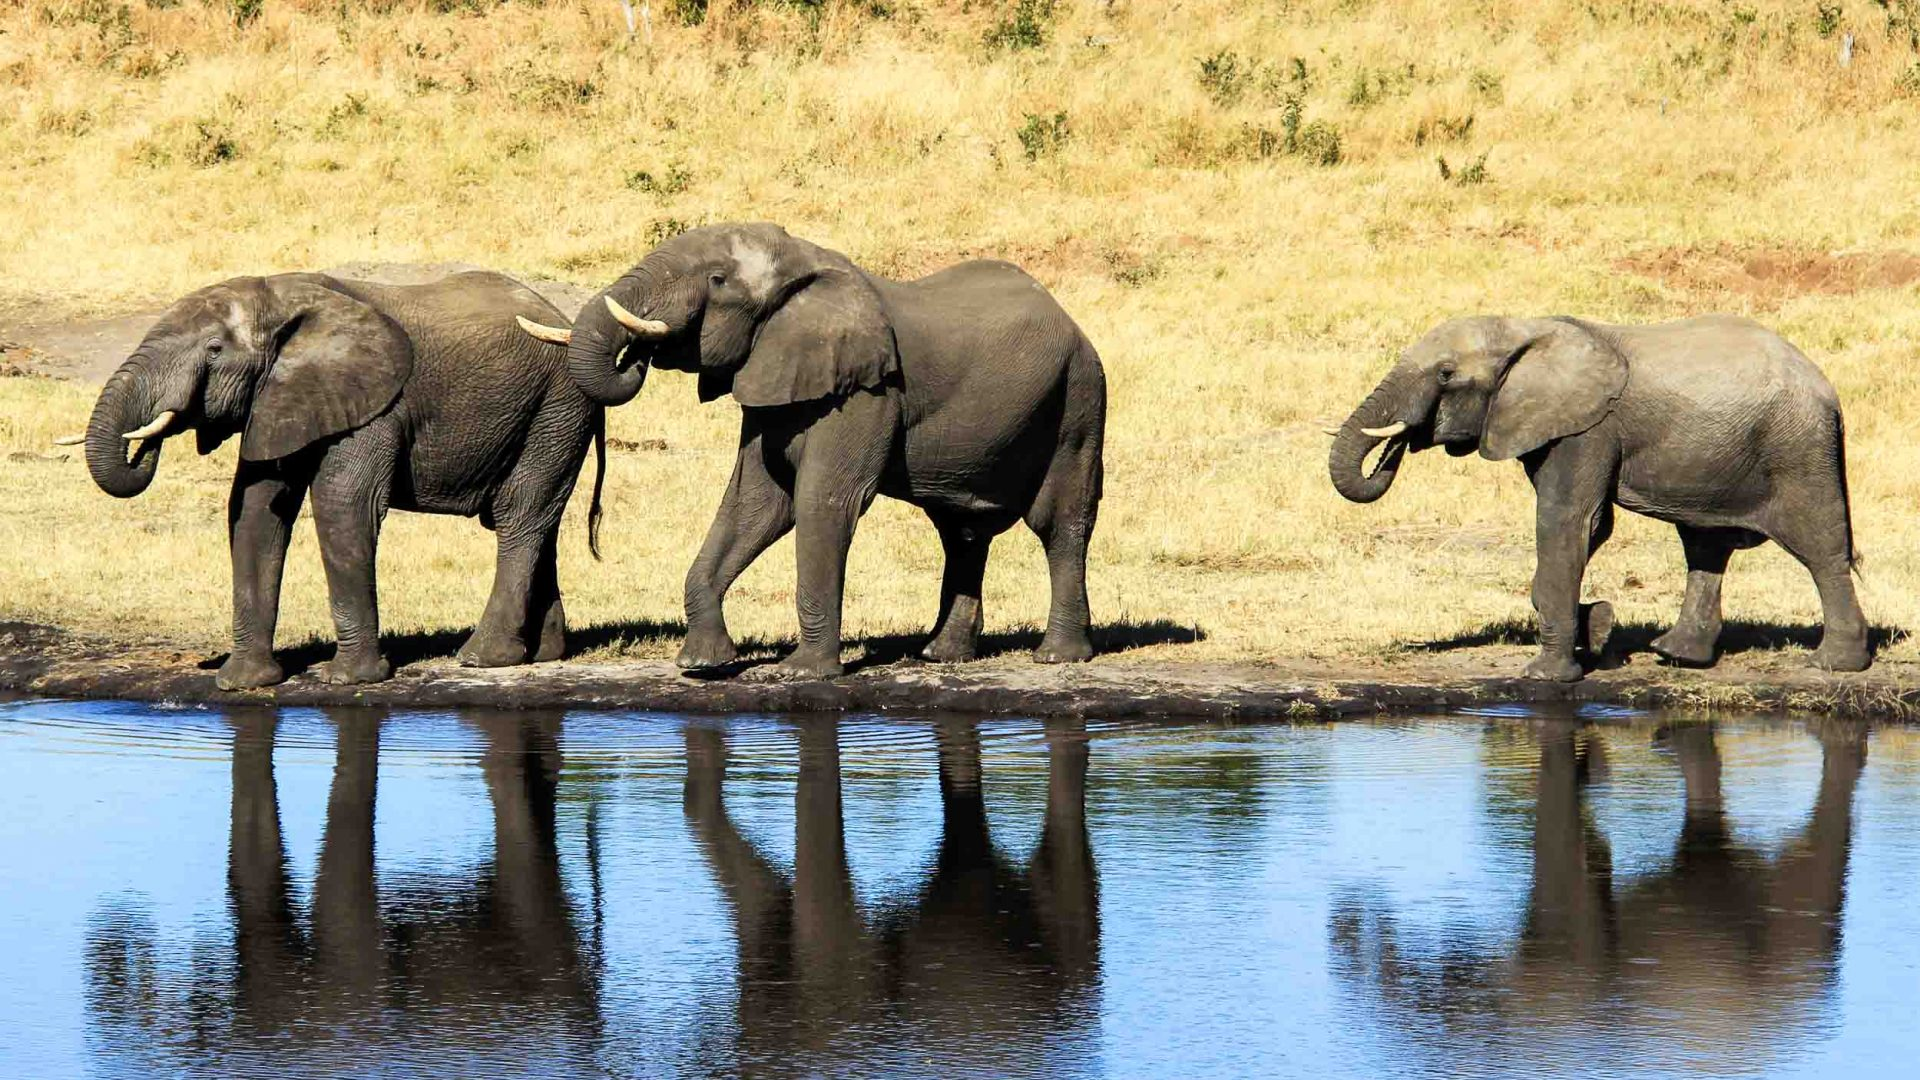 Elephants at a pool in Zimbabwe's Hwange National Park.